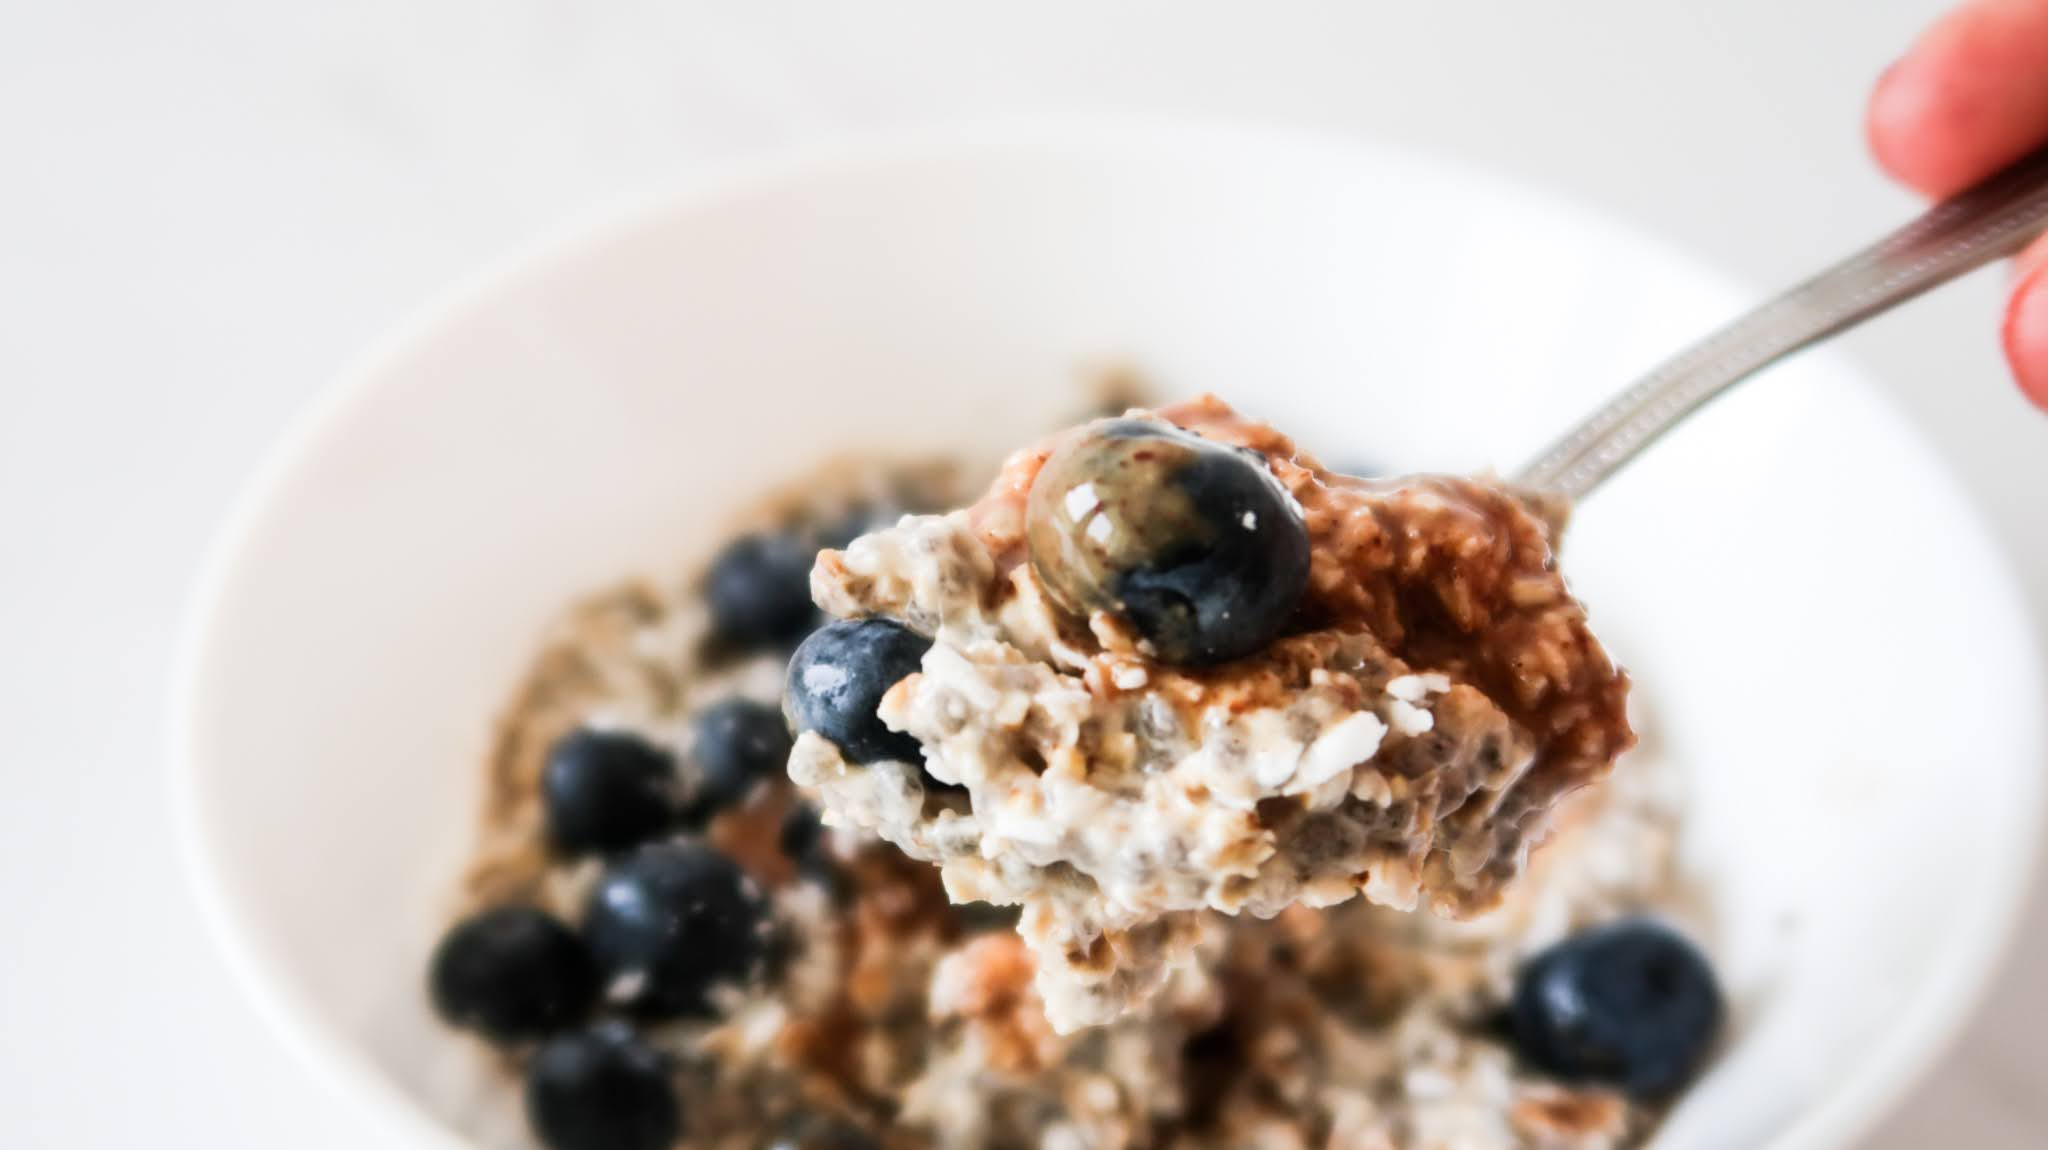 Overnight oats recipe - this is a vegan overnight oats recipe that is a super quick and easy healthy breakfast idea that you can meal prep or eat on the go. Perfect for clean eating as well!